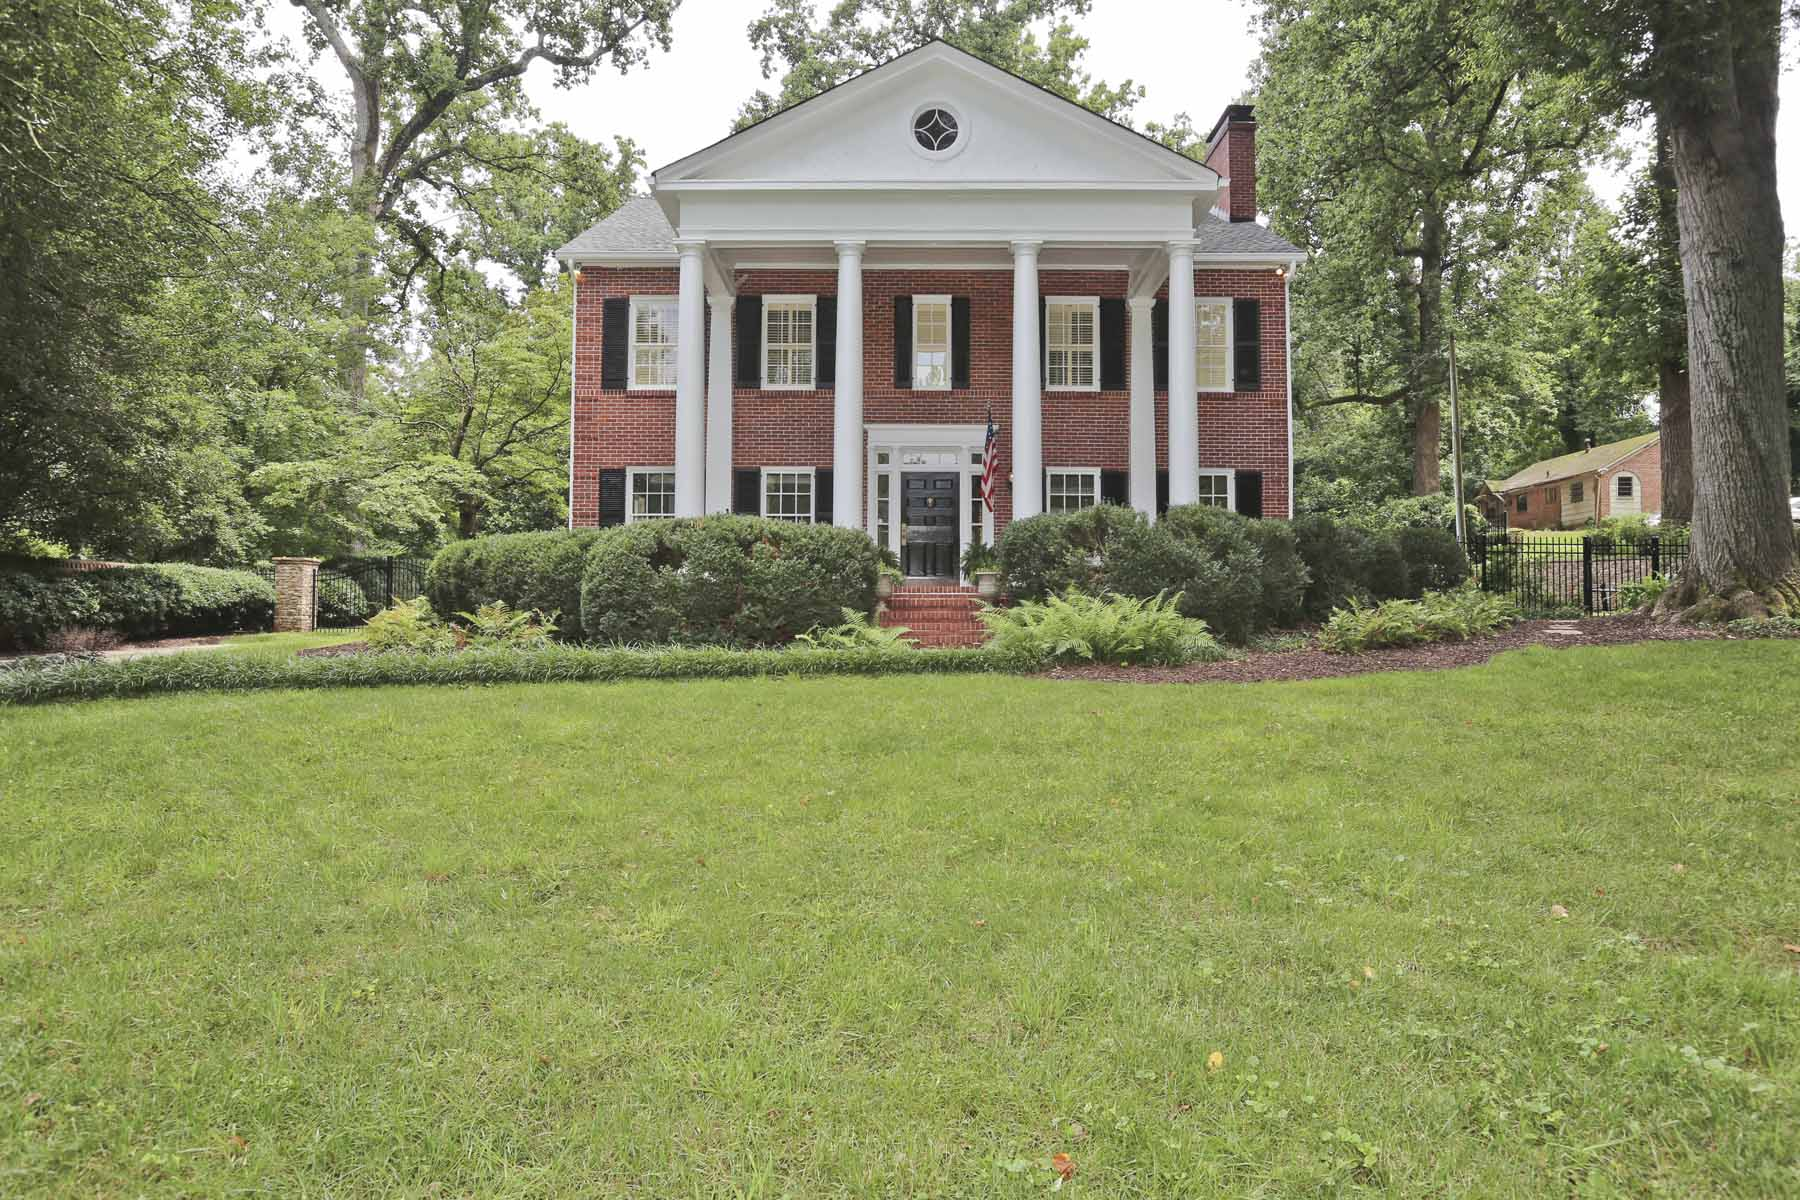 Single Family Home for Sale at Historic Georgian Masterpiece in Druid Hills 2115 Ponce de Leon Avenue NE Druid Hills, Atlanta, Georgia, 30307 United States